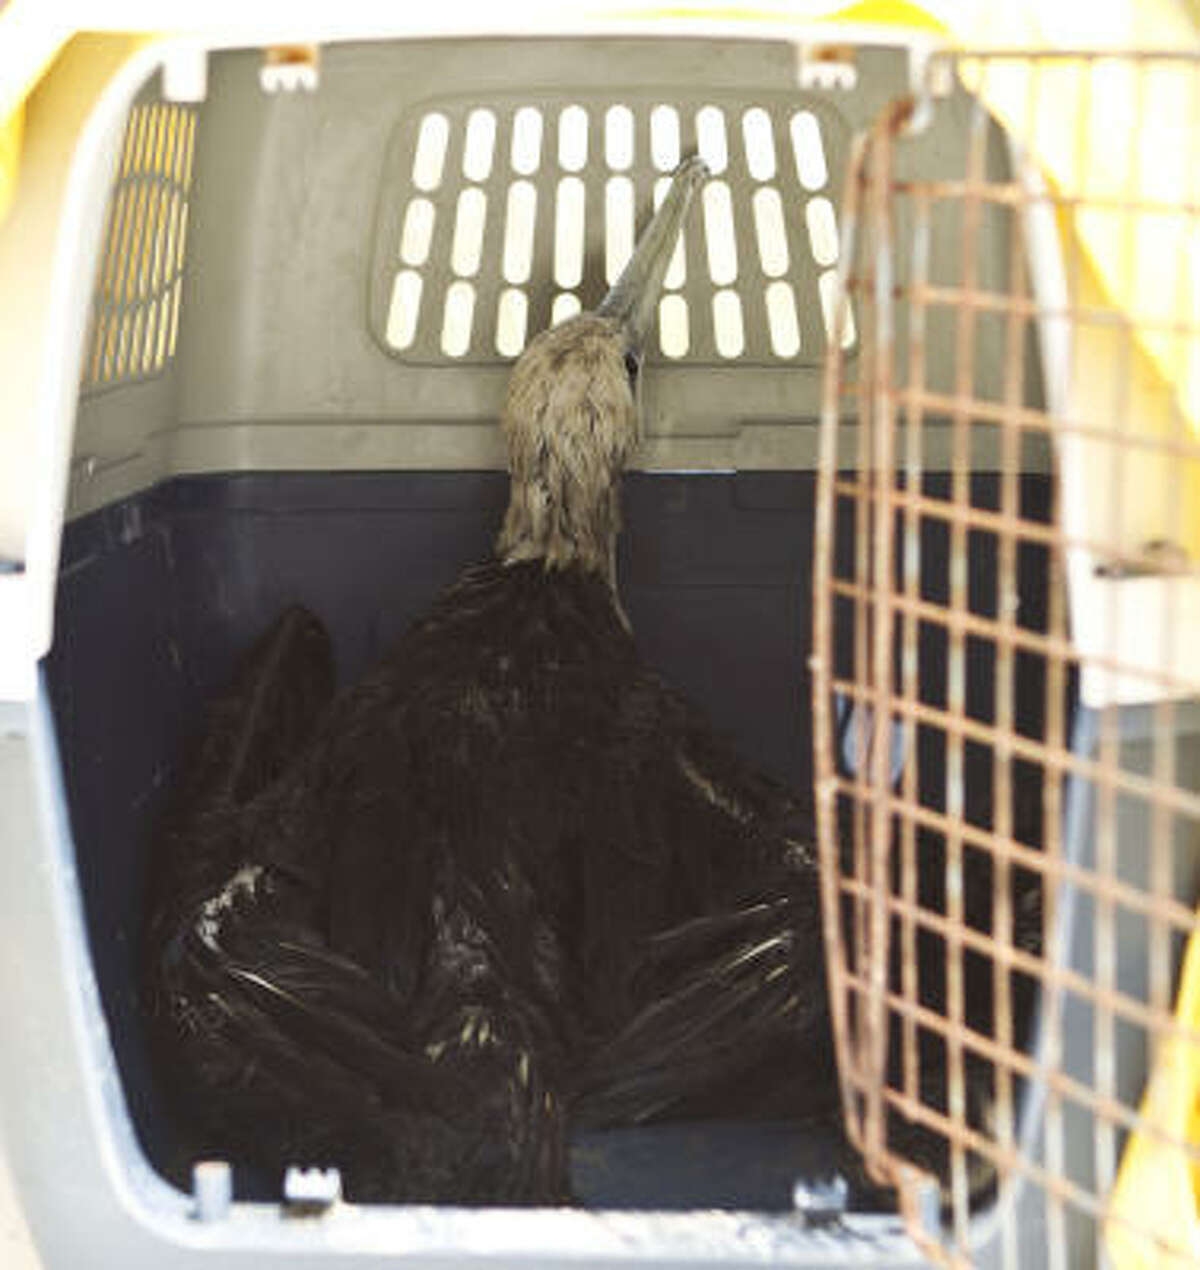 Soaked by oil, a captive frigate bird in the care of the Louisiana Department of Wildlife and Fisheries shows the effects of the BP Deepwater Horizon tragedy early this month in Port Sulphur, La. The government banned deep-water drilling for months after the blowout and fatal explosion.